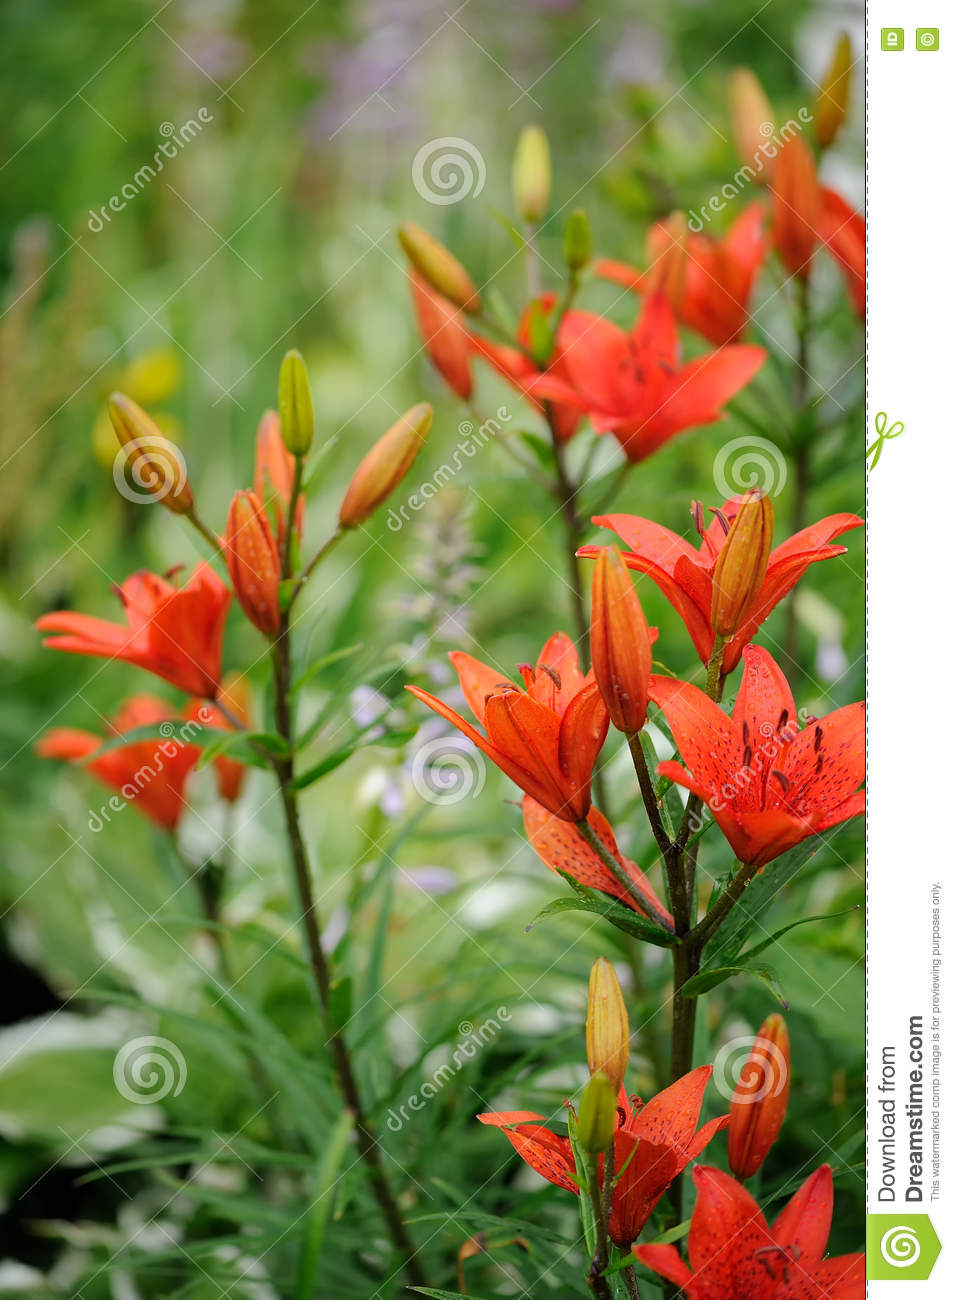 Tiger lilies on flower bed in garden stock photo image of floral tiger lilies on flower bed in garden izmirmasajfo Images